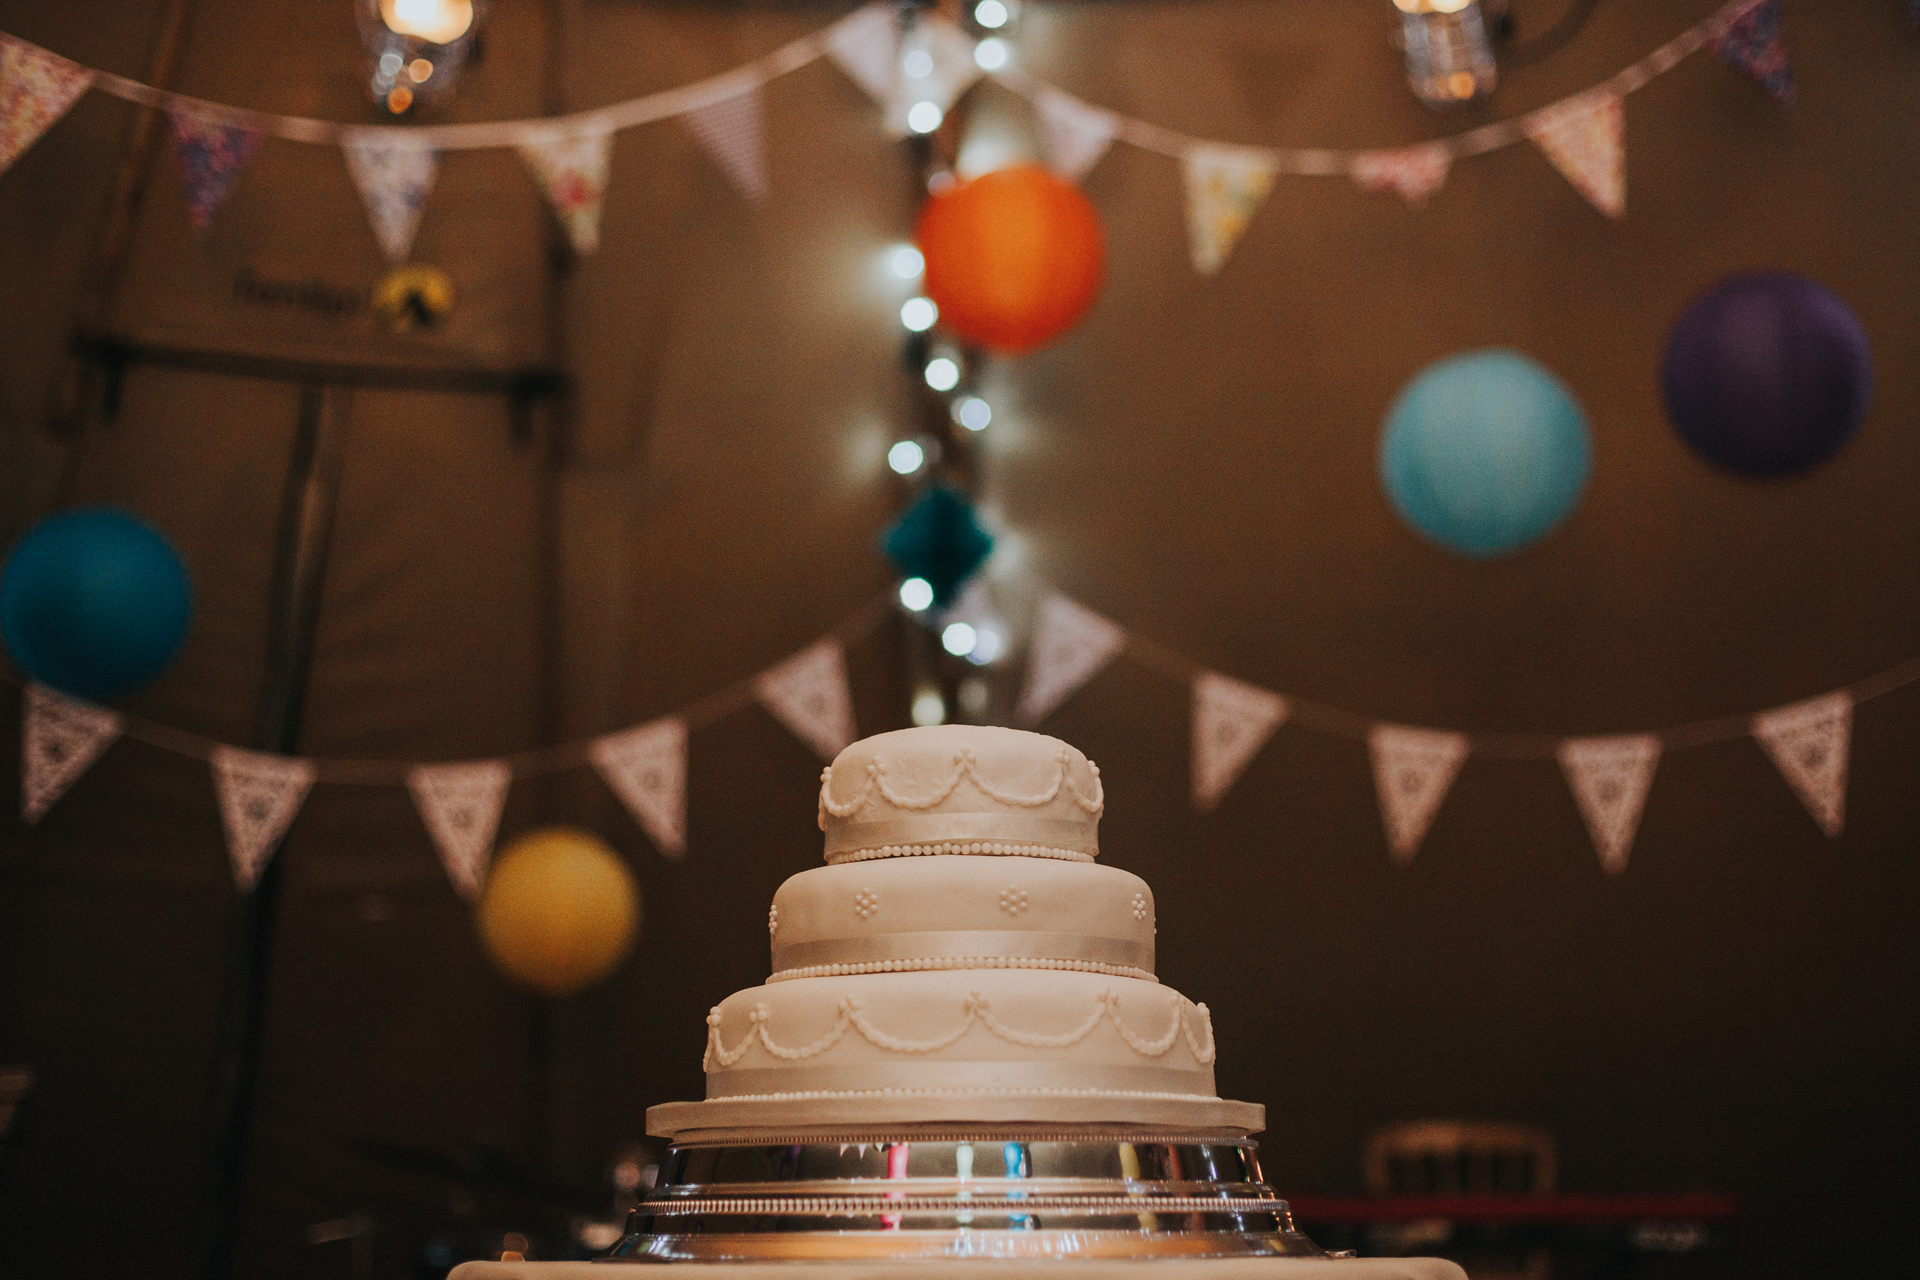 The wedding cake with bunting in background.